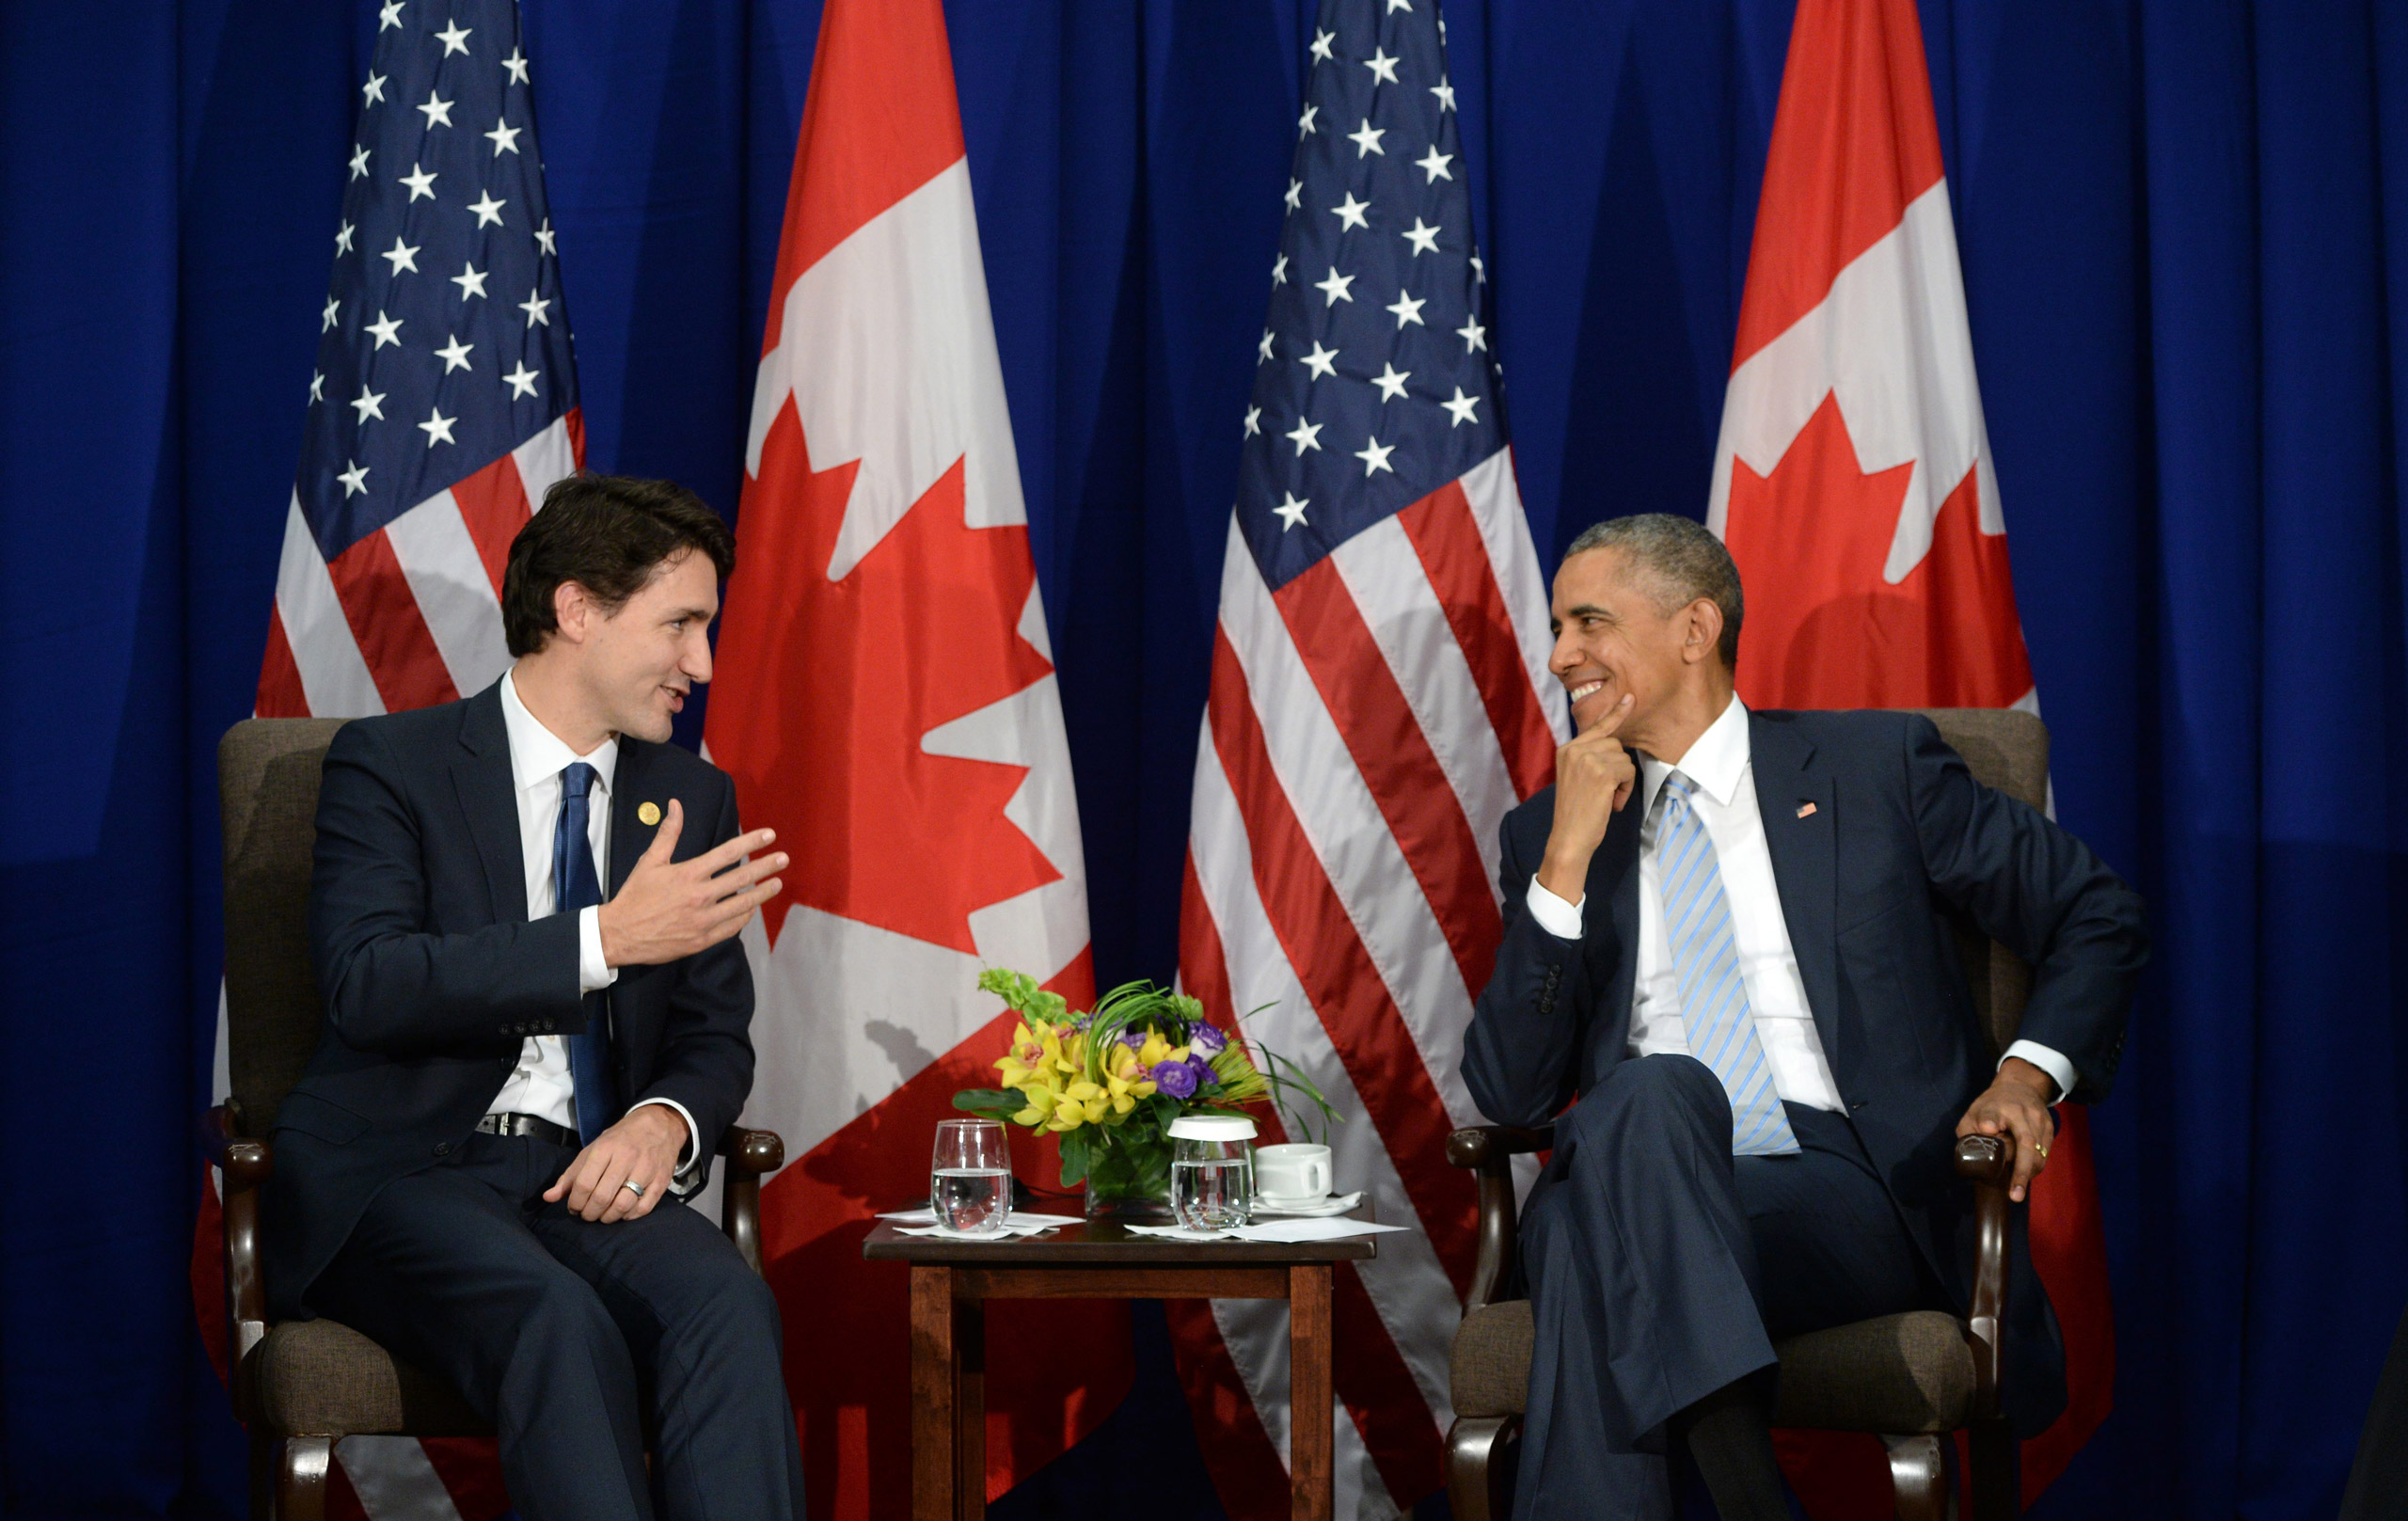 Canada's Prime Minister Justin Trudeau, left, takes part in a bilateral meeting with U.S. President Barack Obama at the APEC Summit in Manila on Nov. 19, 2015.